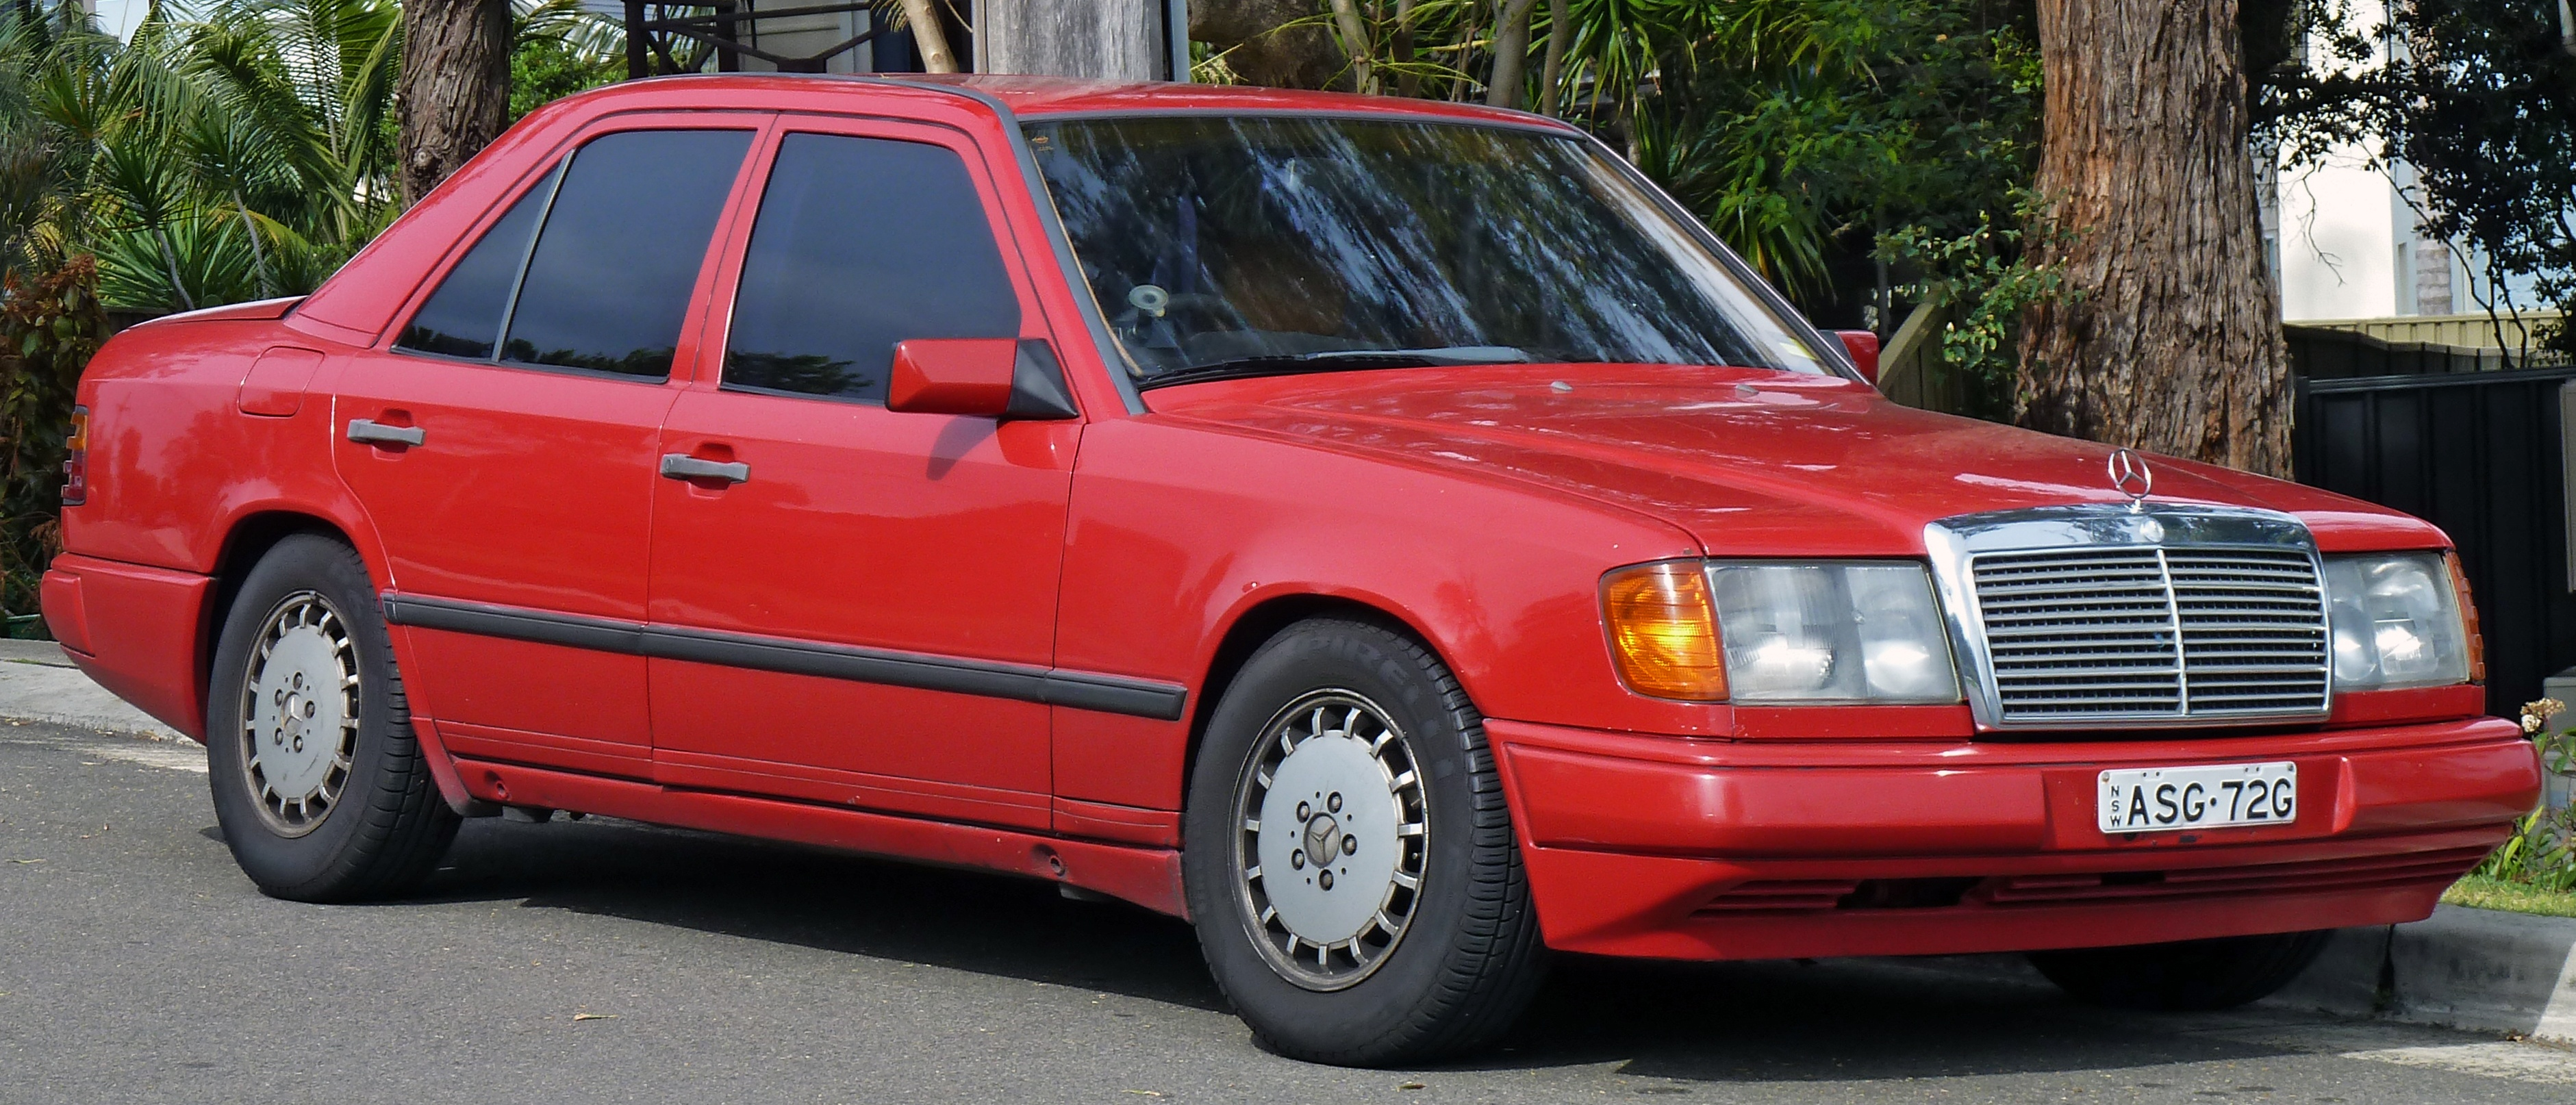 file1986 1989 mercedes benz w124 sedan 01 wikimedia commons